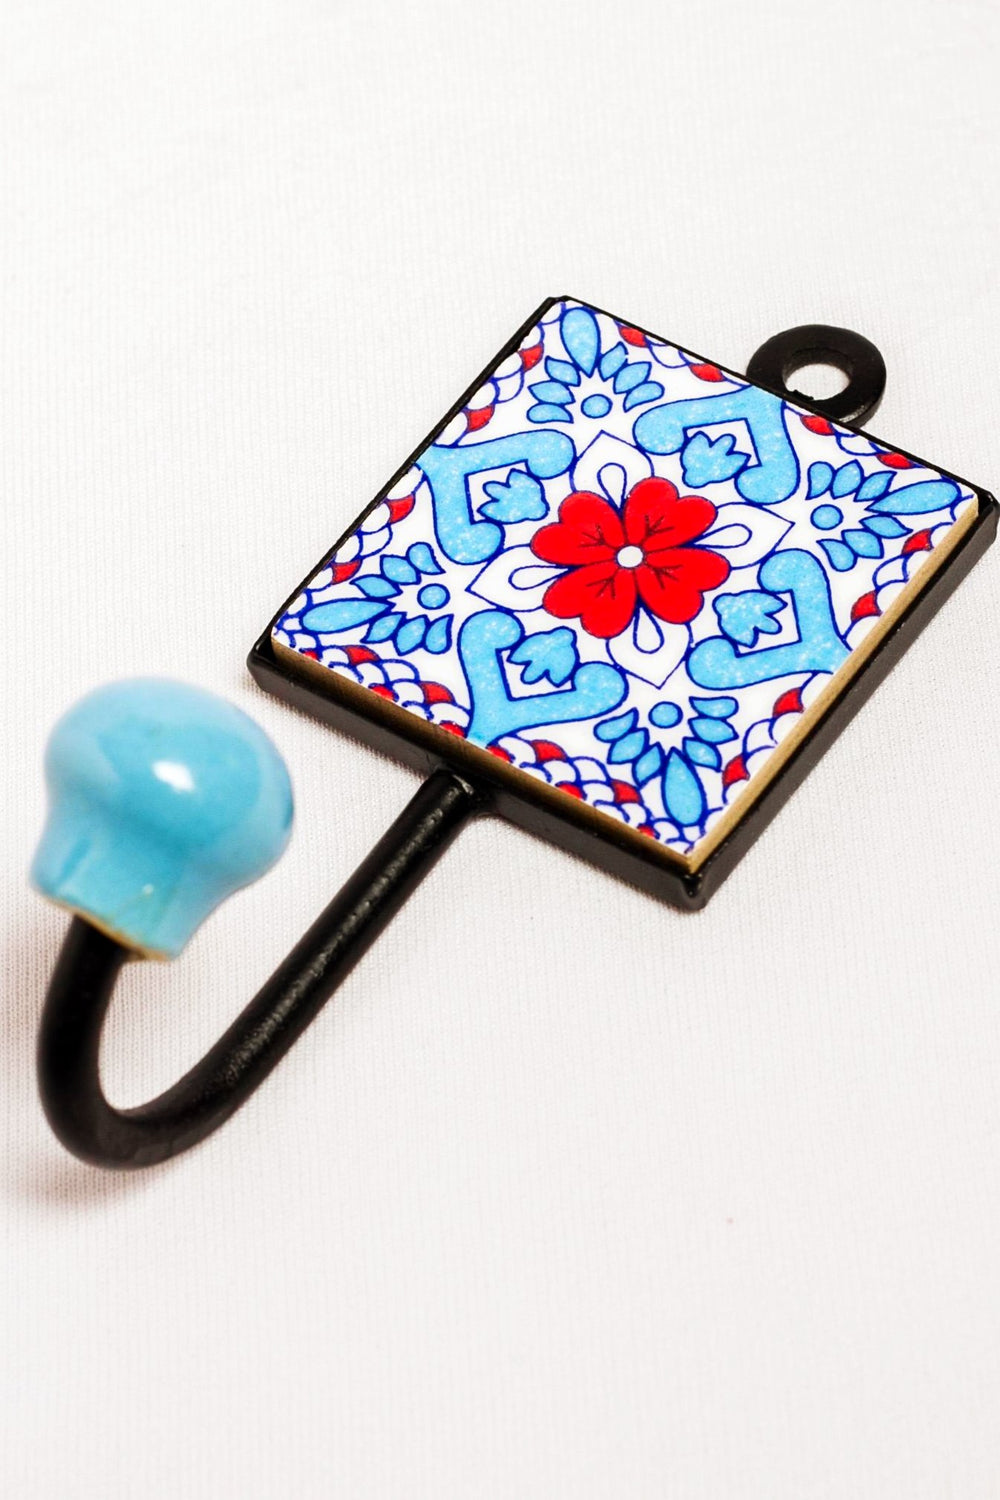 Metal and single ceramic tile wall hook, white with blue and red floral motif